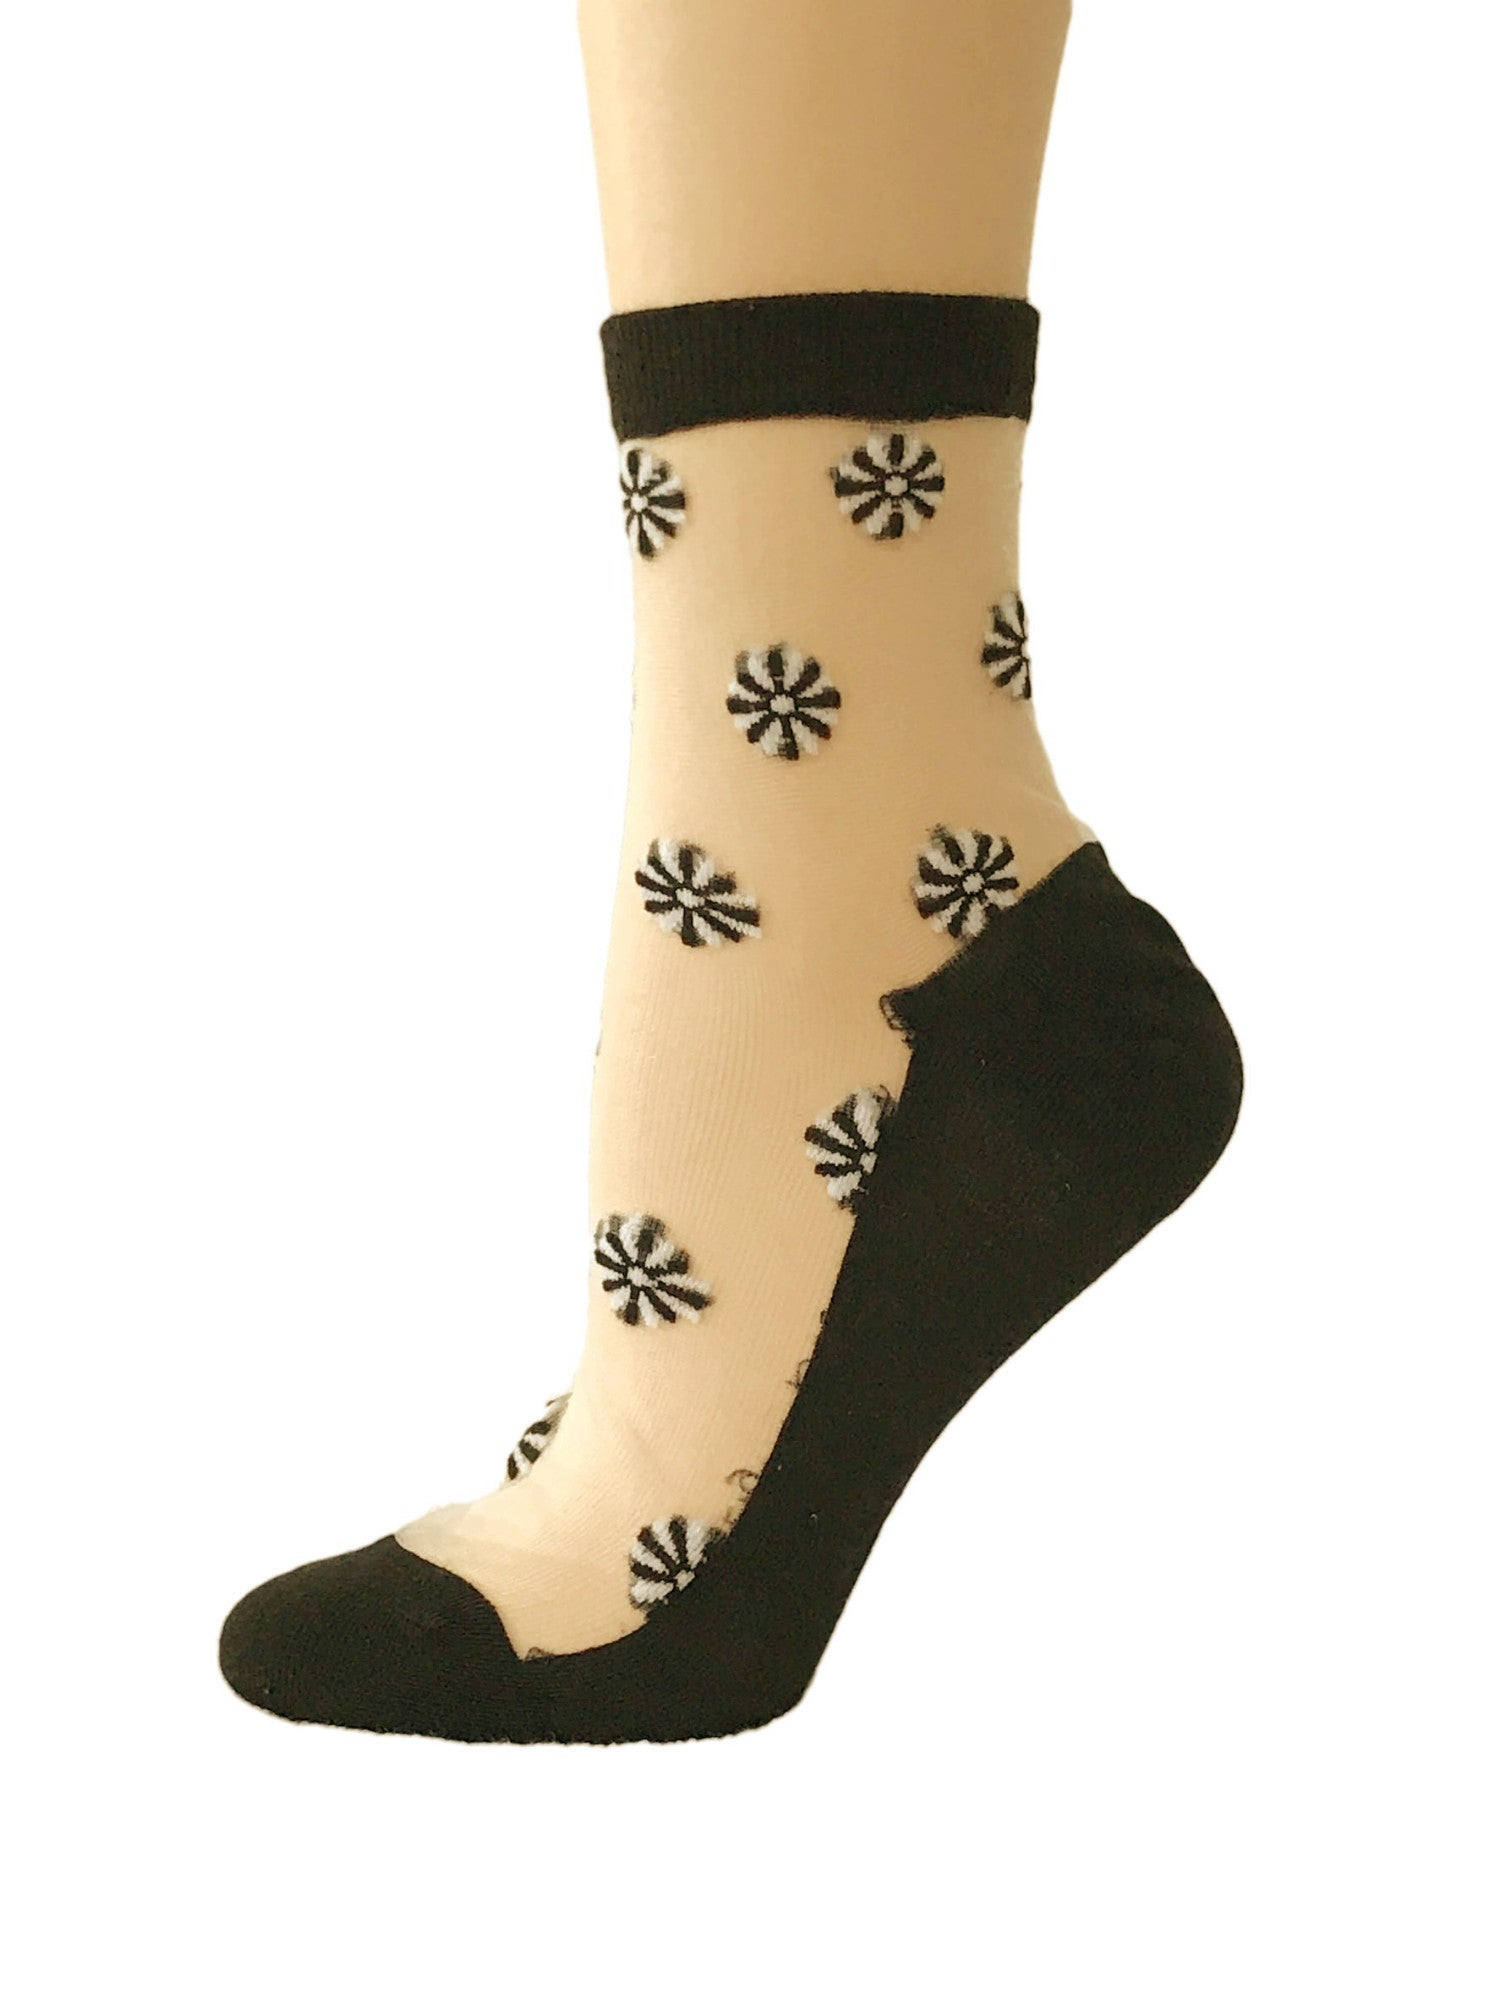 Black/White Flowers Sheer Socks - Global Trendz Fashion®